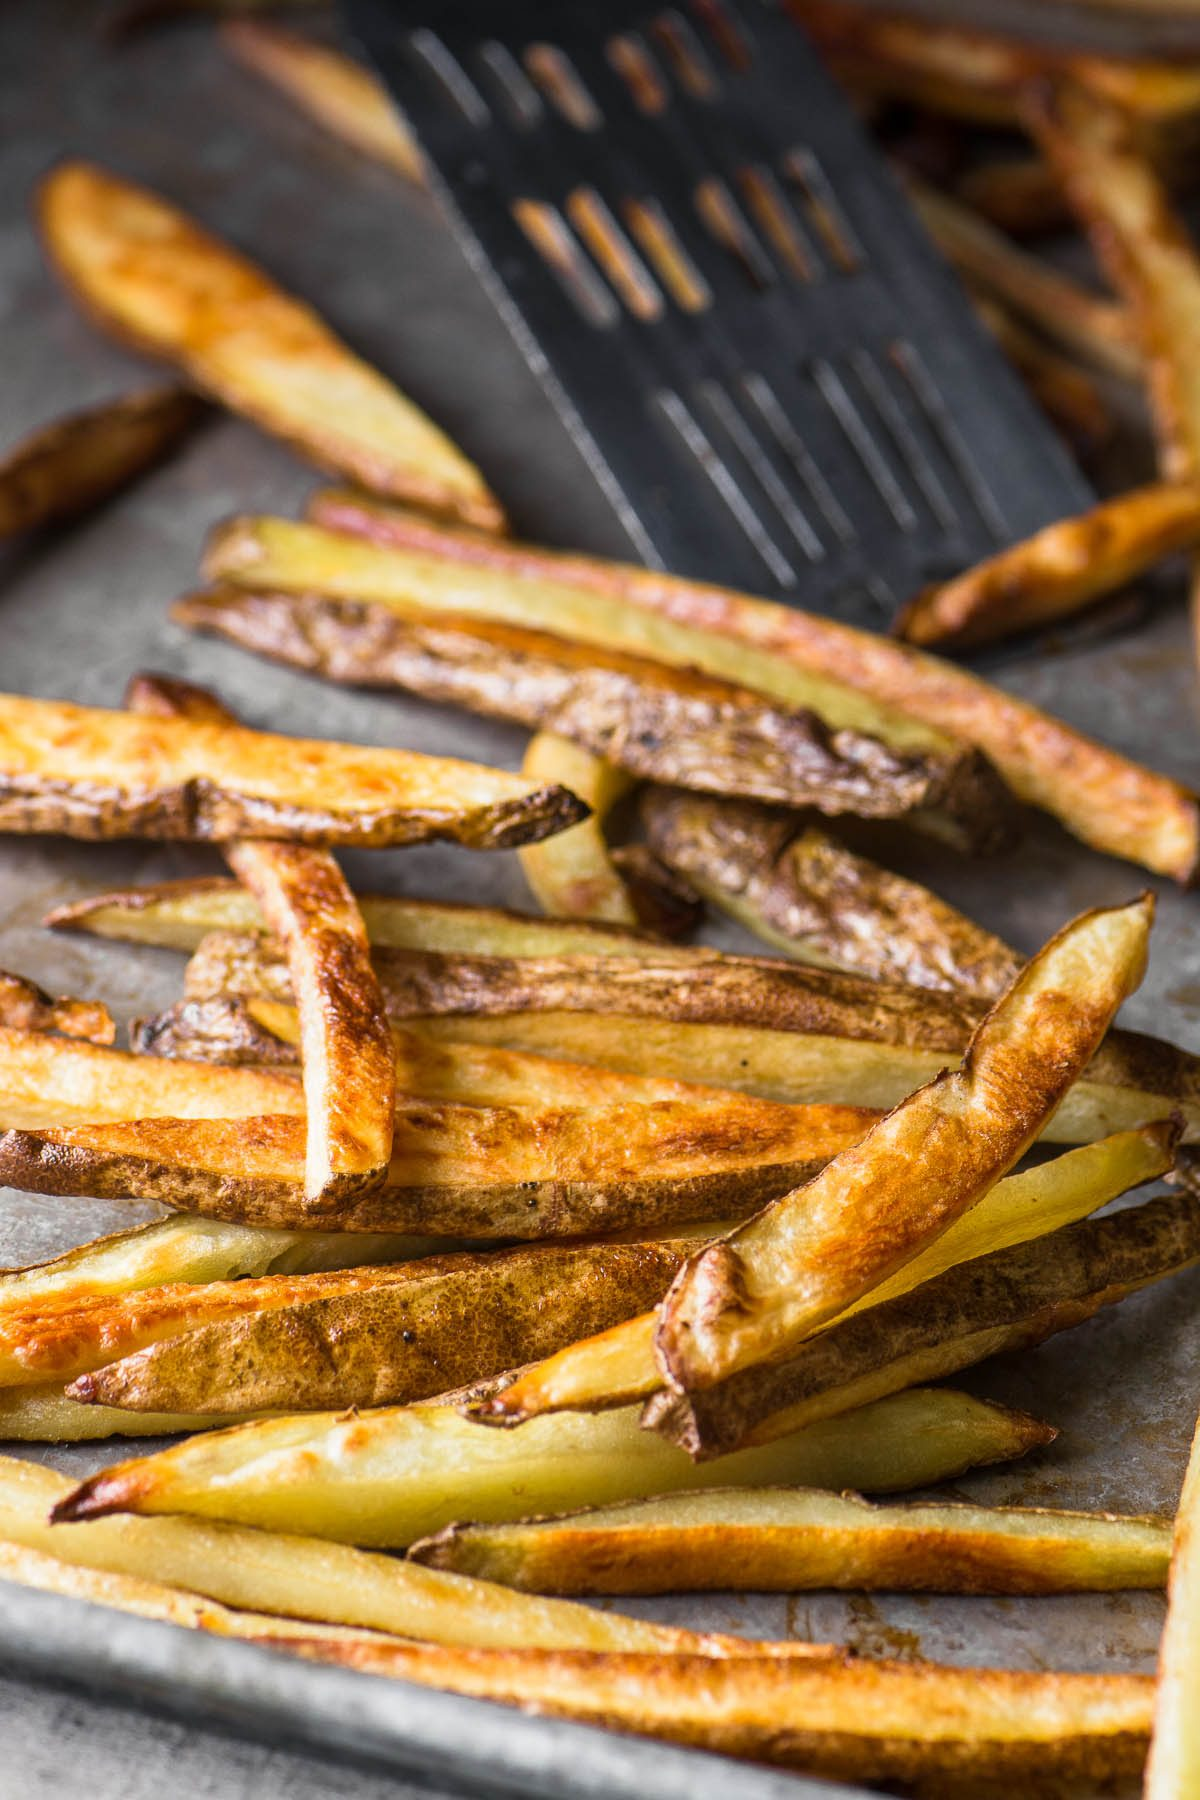 Baked french fries on a baking tray with spatula